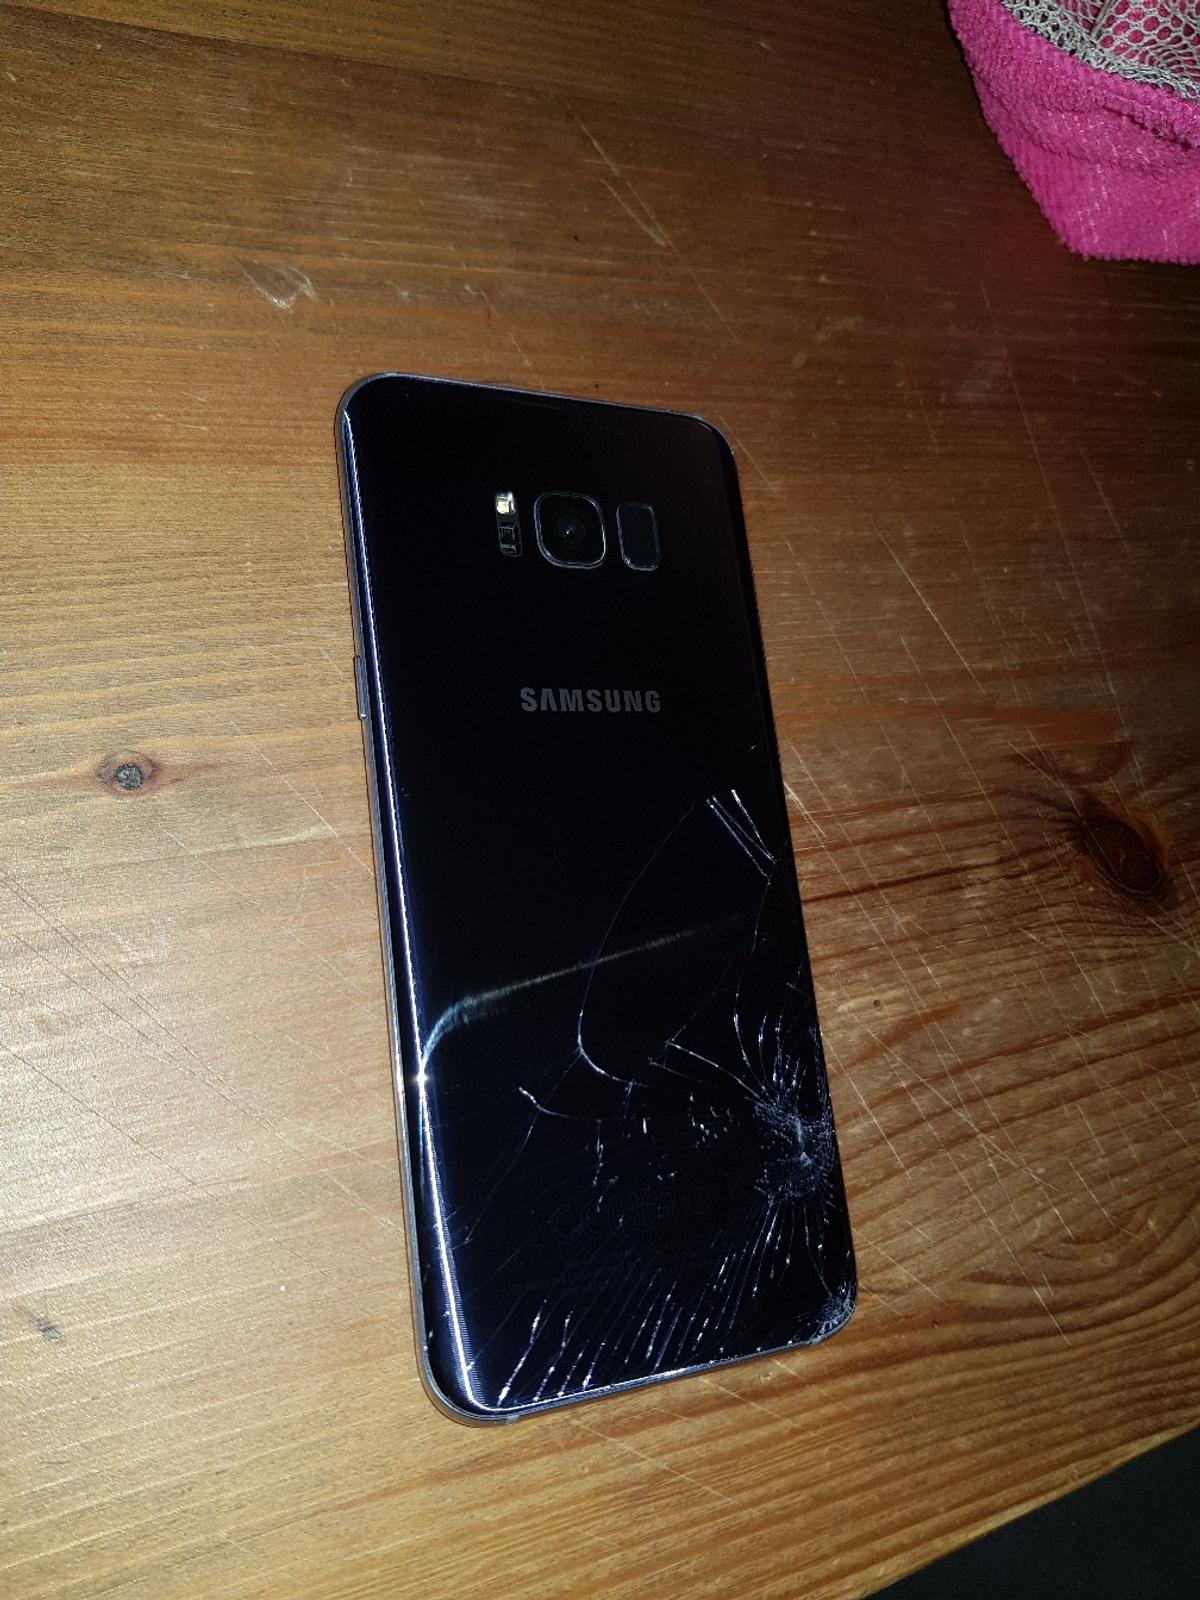 Samsung s8 plus 64gb *cracked screen* in LA1 Lancaster for